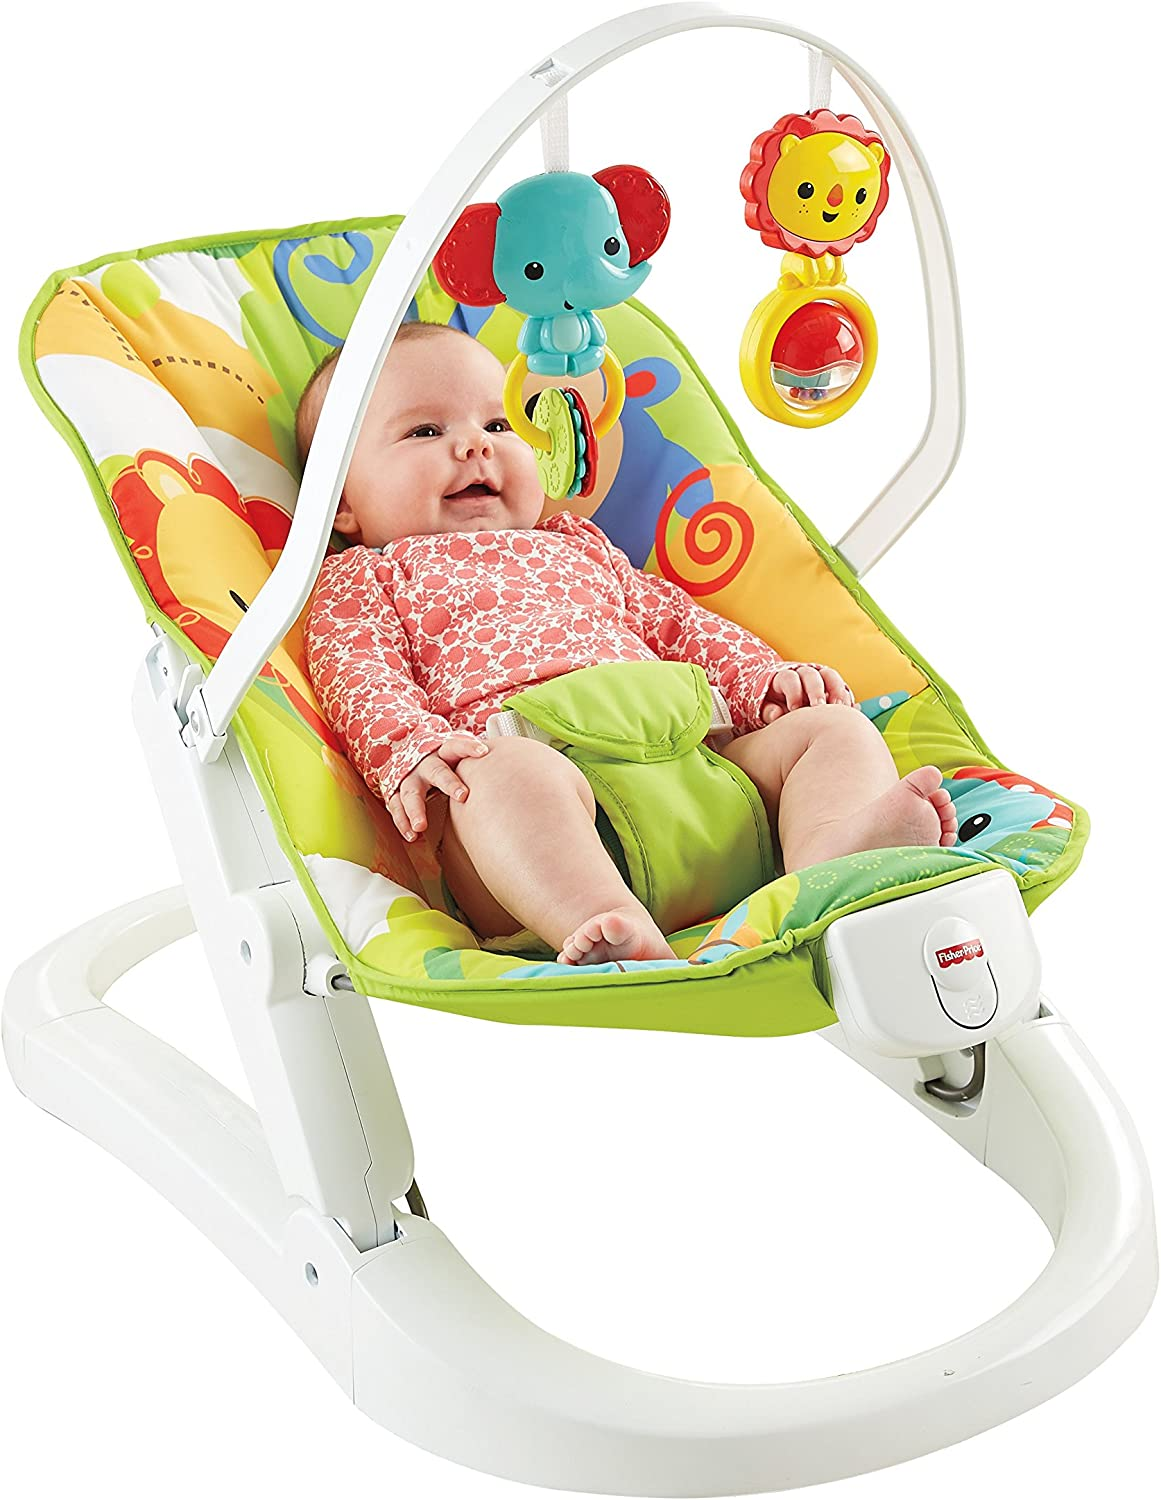 2.7 kg GNR00 Fisher-Price Signature Style Bouncer